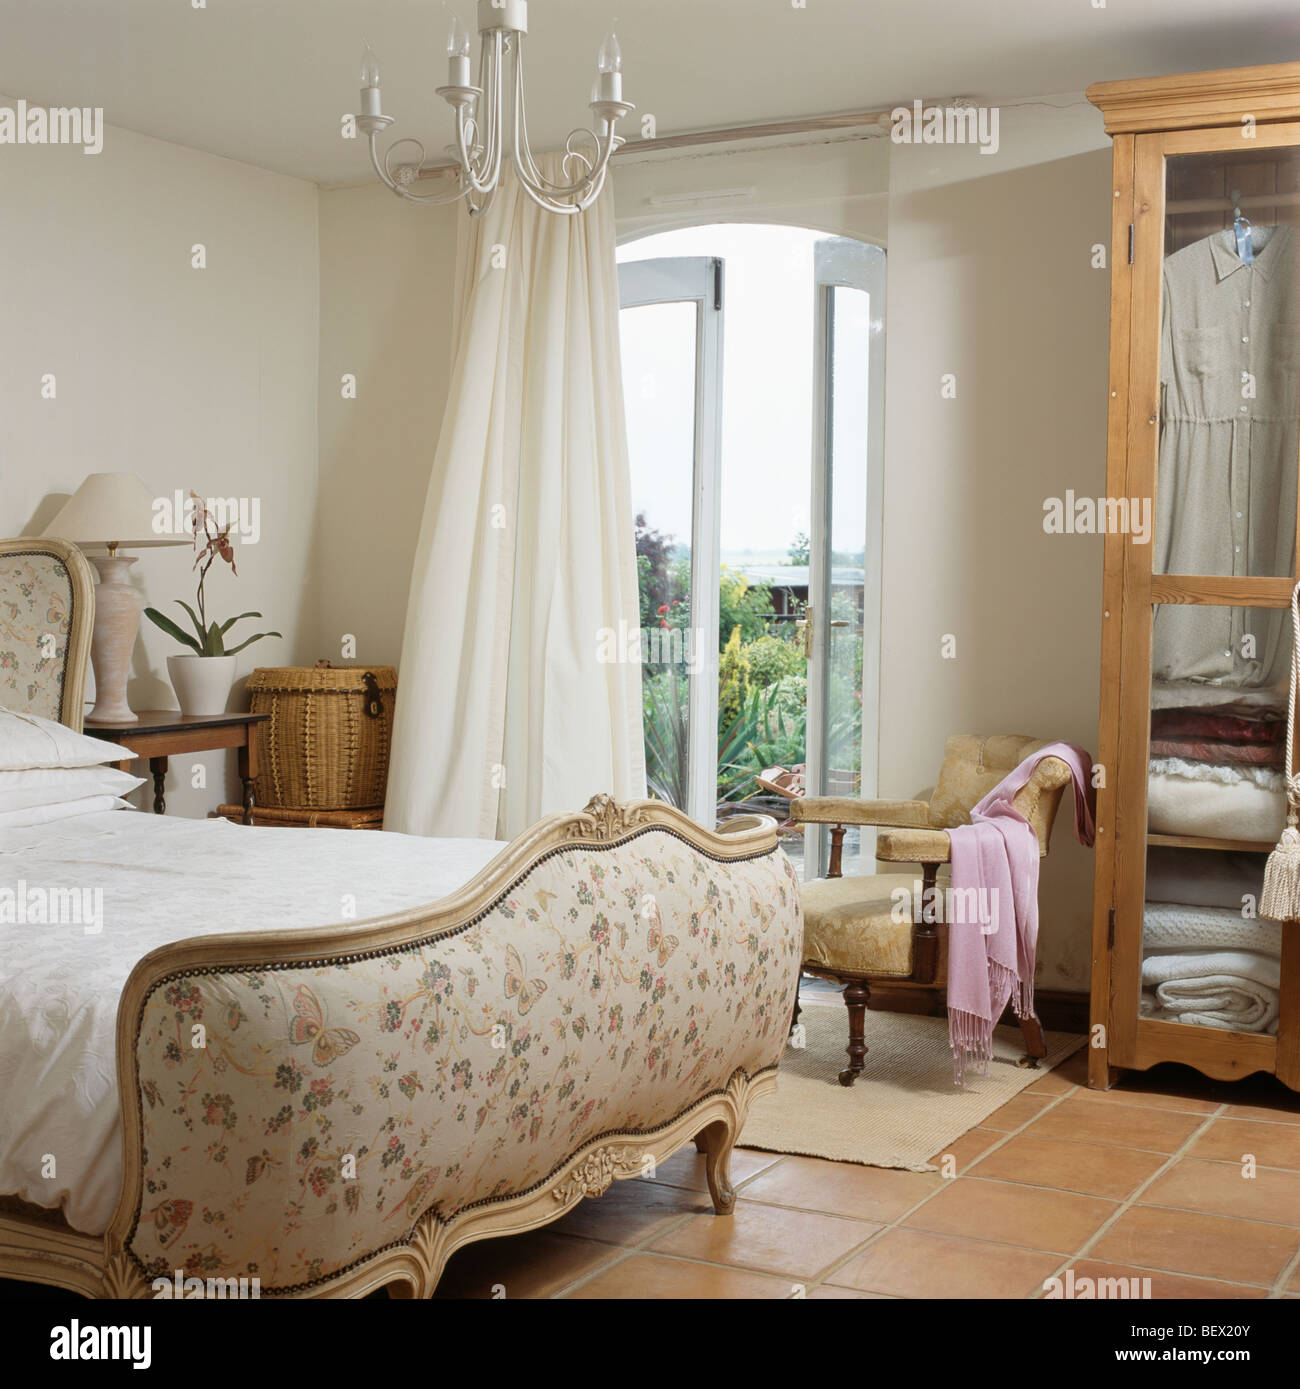 country bedroom with cream curtains at french windows with view of the